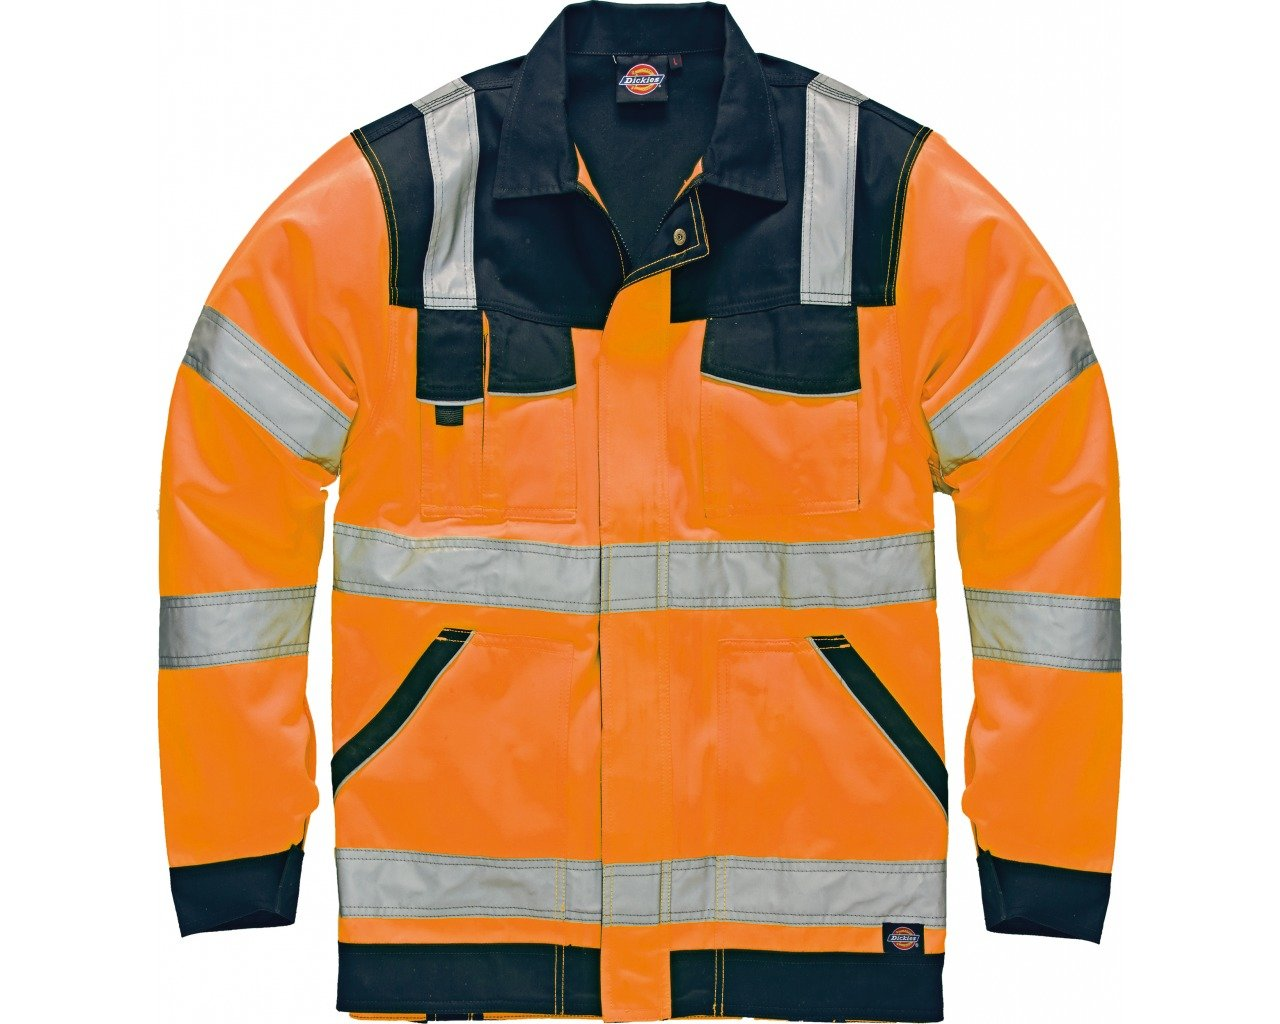 Dickies SA7000 ORNXL Size X-Large Waterproof Hi Vis Safety Coverall Orange//Navy Blue